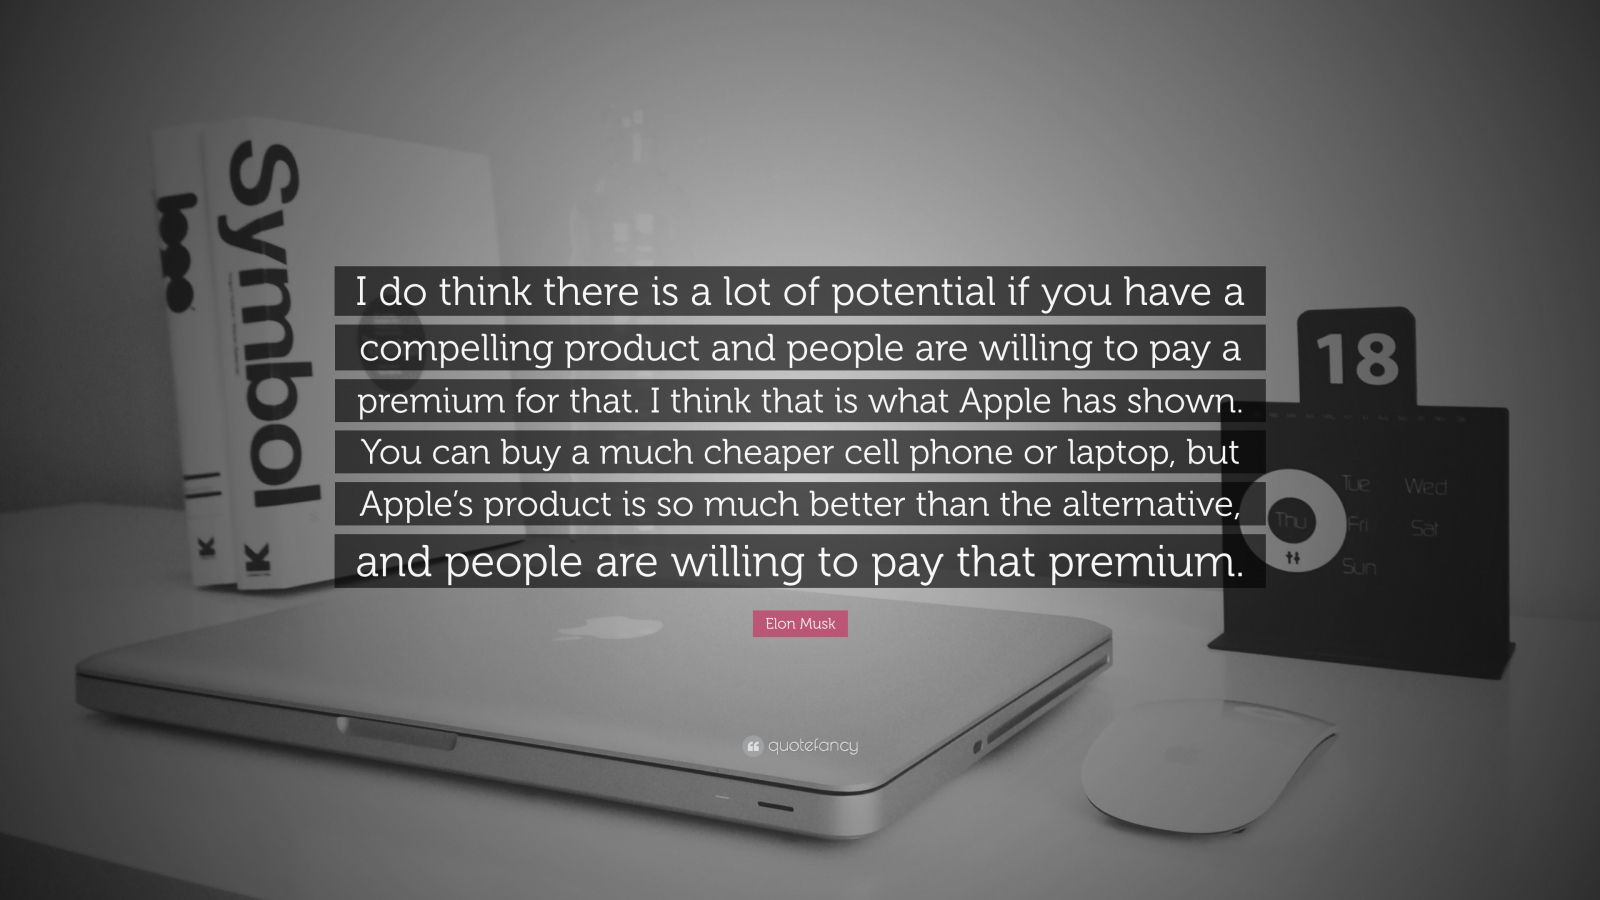 """Elon Musk Quote: """"I do think there is a lot of potential if you have a compelling product and people are willing to pay a premium for that. I think that is what Apple has shown. You can buy a much cheaper cell phone or laptop, but Apple's product is so much better than the alternative, and people are willing to pay that premium."""""""